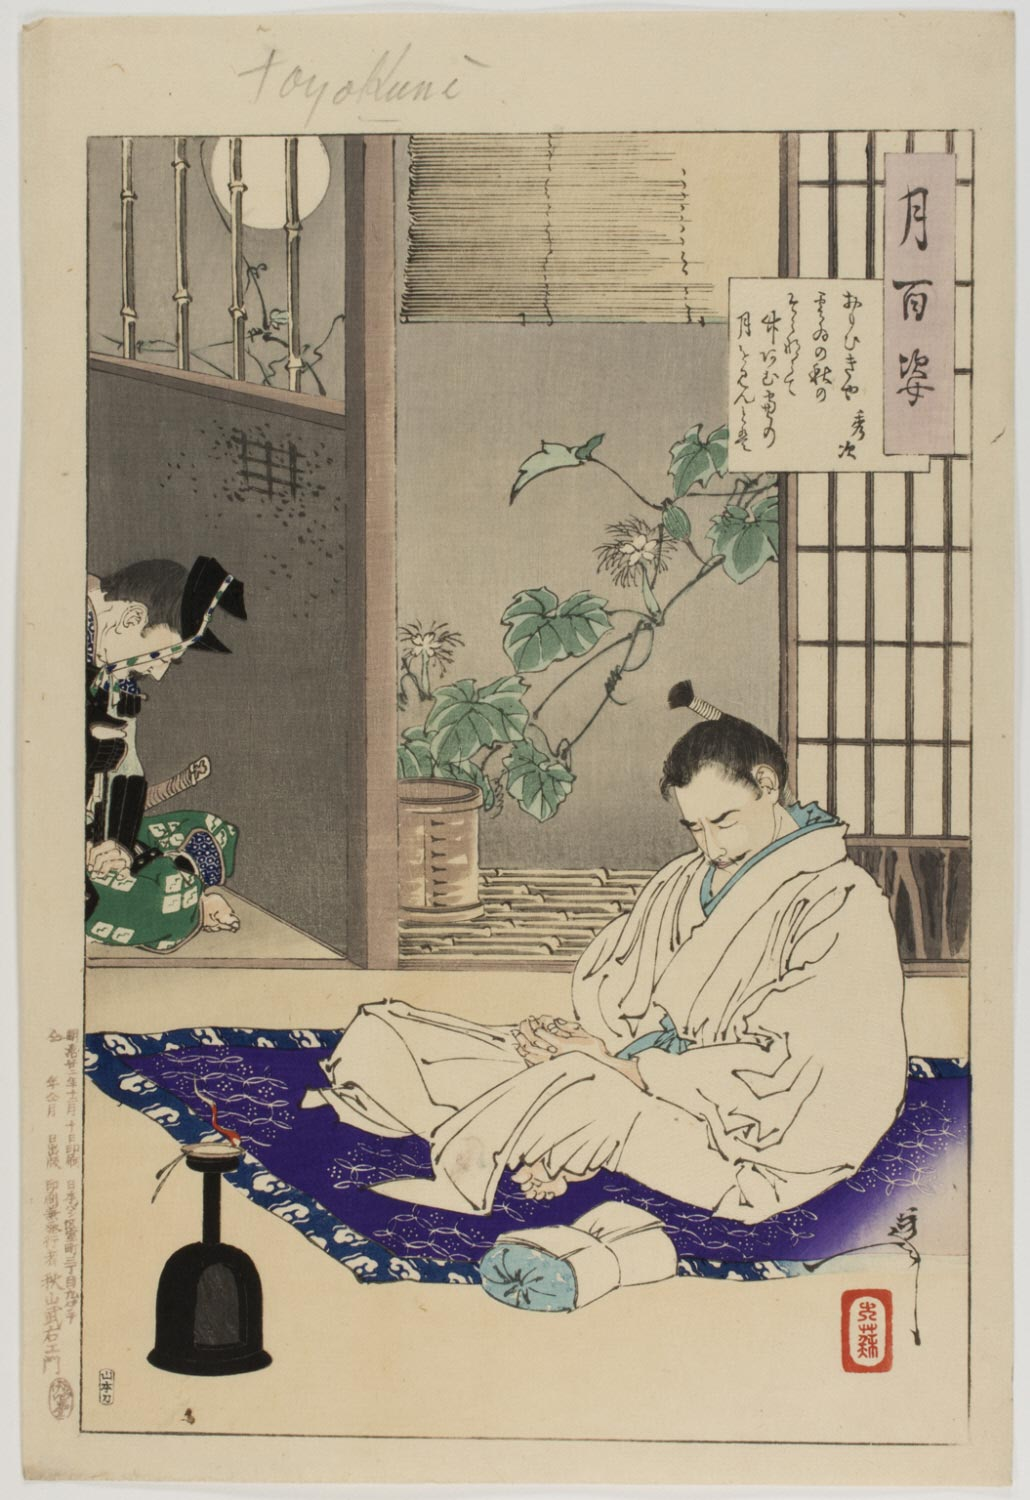 A Poem by Hidetsugu: Did I Ever Imagine as the Clouds of the High Autumn Cleared I would View the Moon through a Bamboo Lattice Window